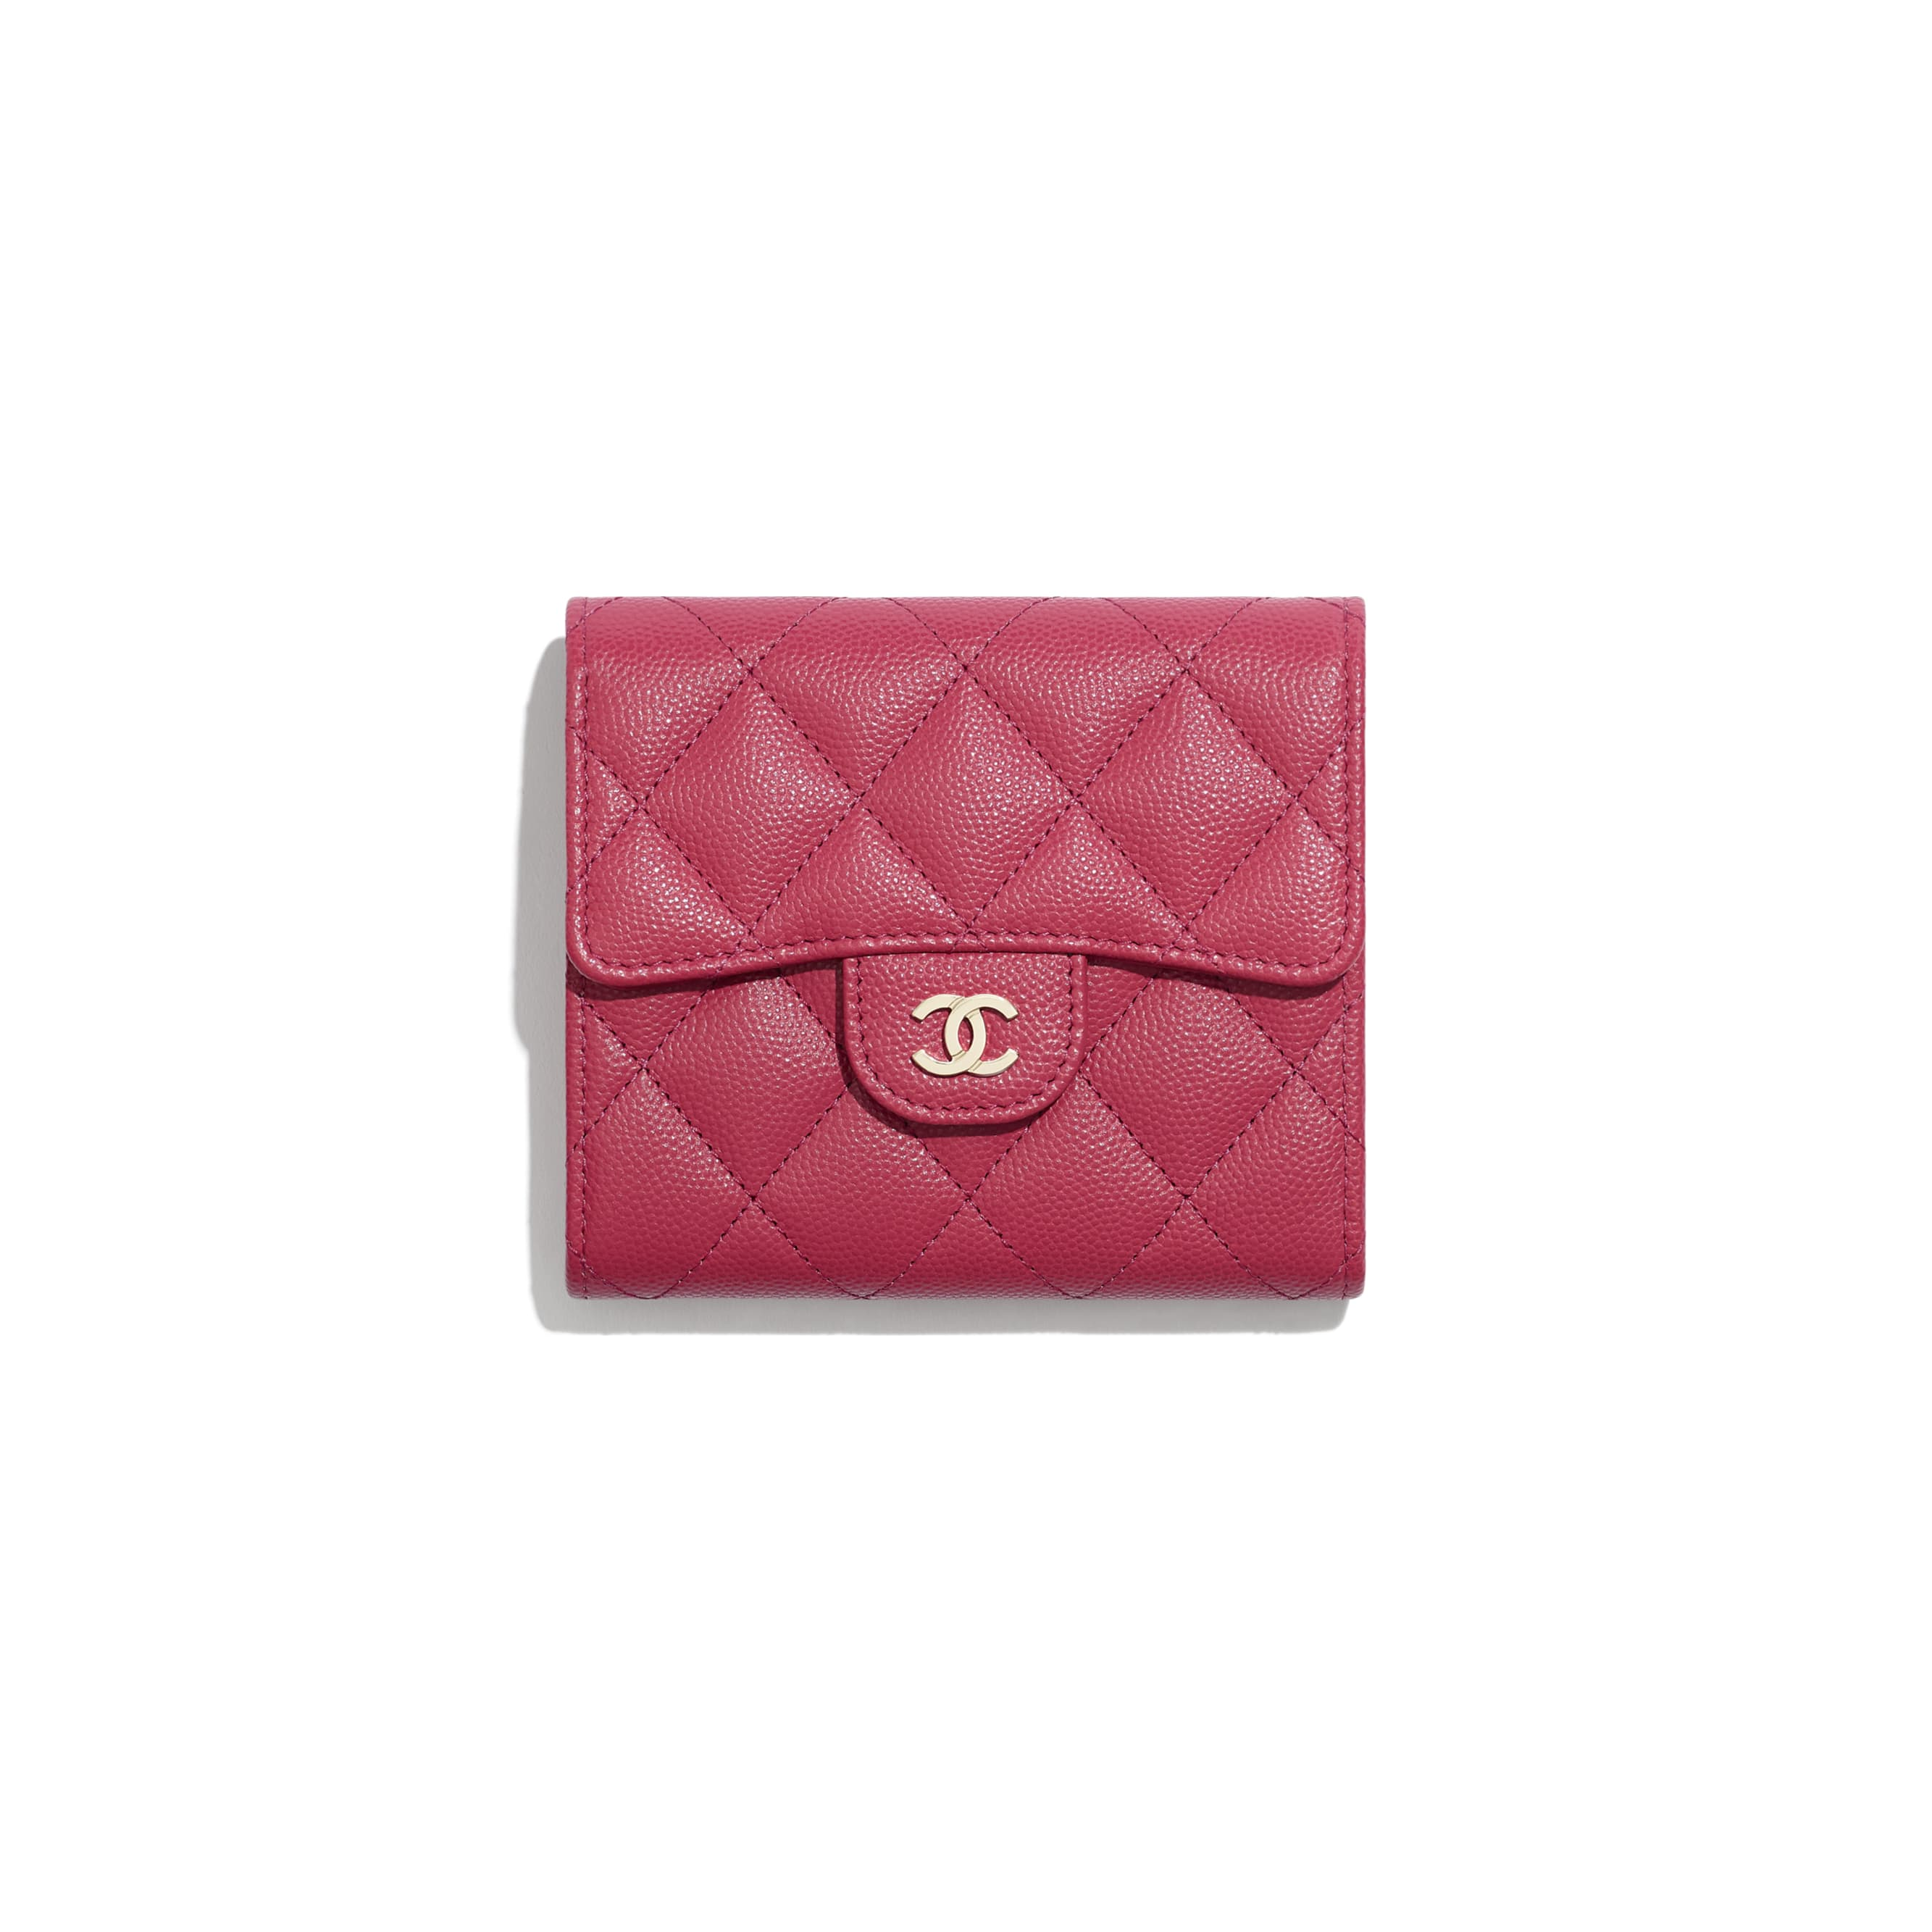 Classic Small Flap Wallet - Dark Pink - Grained Calfskin & Gold-Tone Metal - Default view - see standard sized version